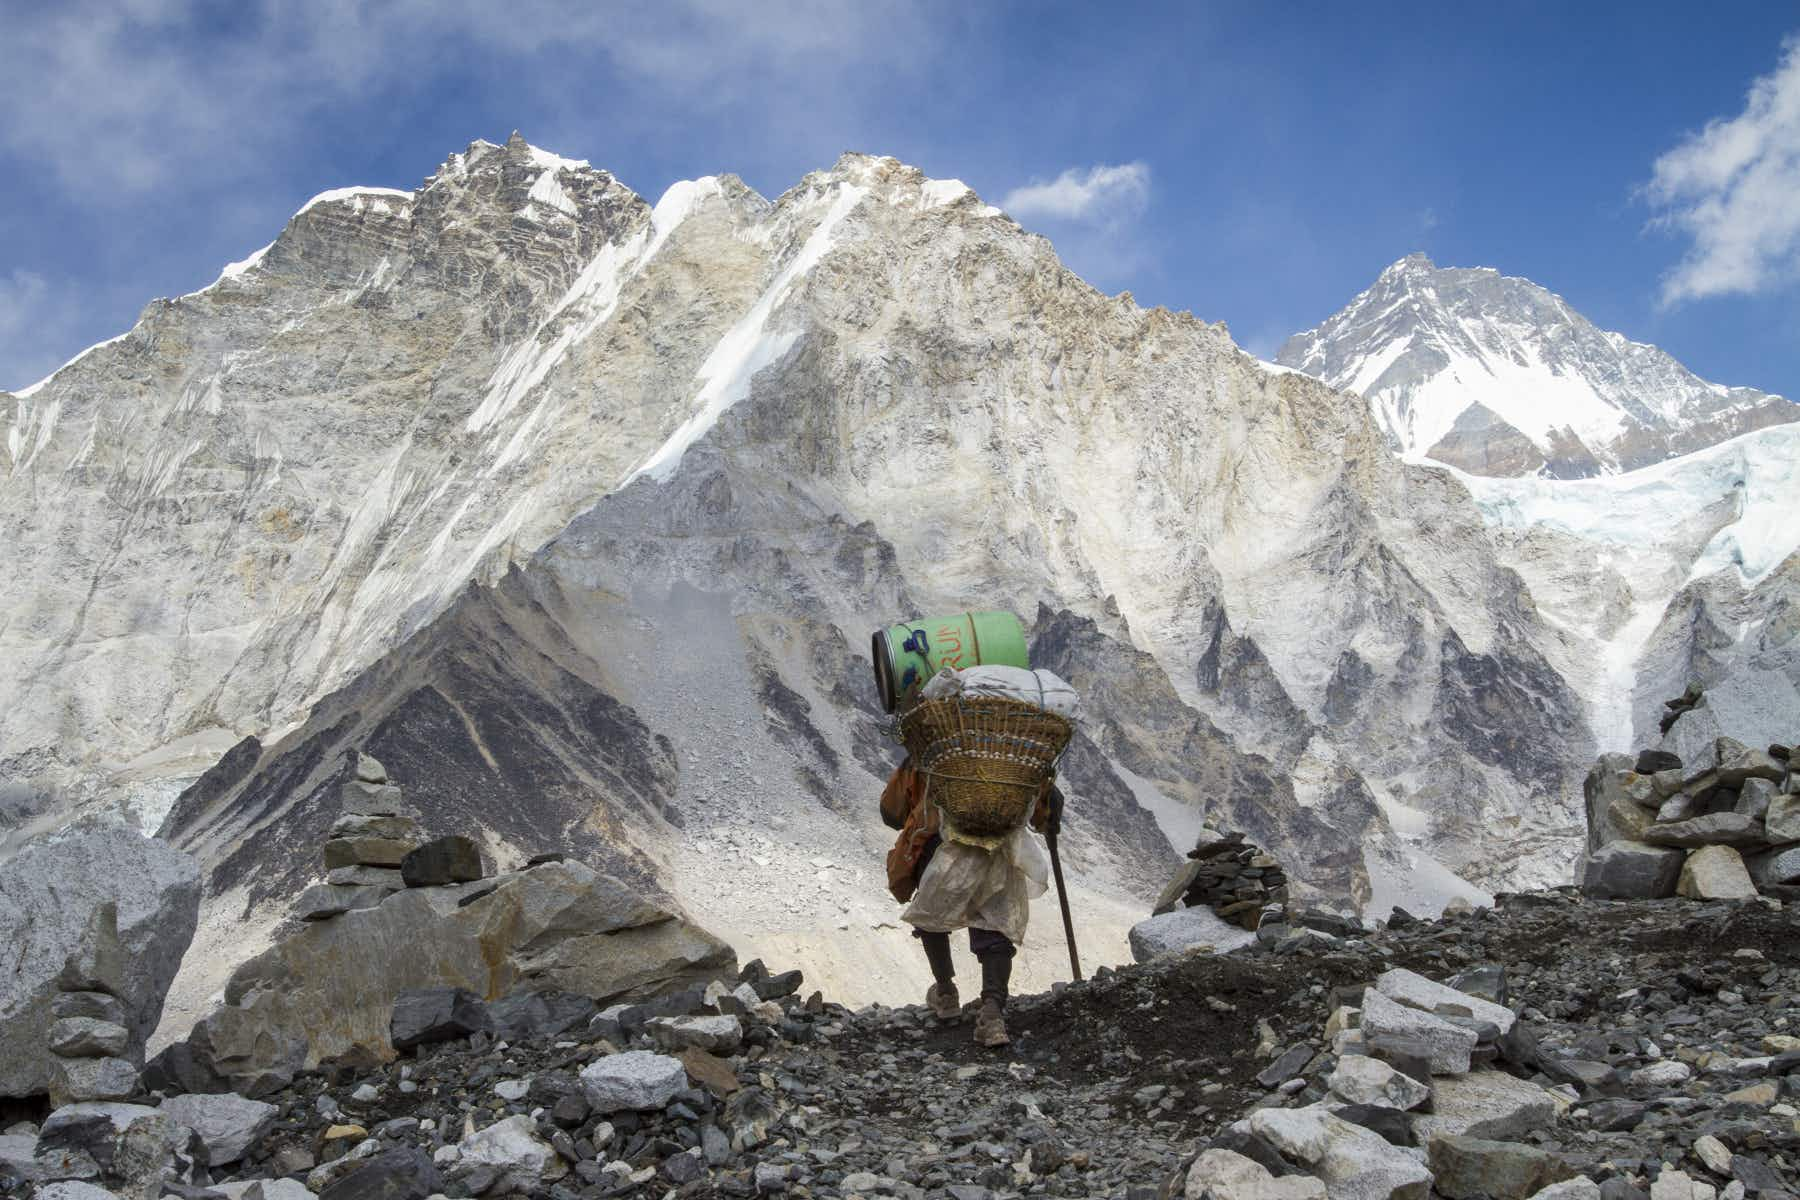 Solo climbers no longer allowed to climb Mount Everest for safety reasons